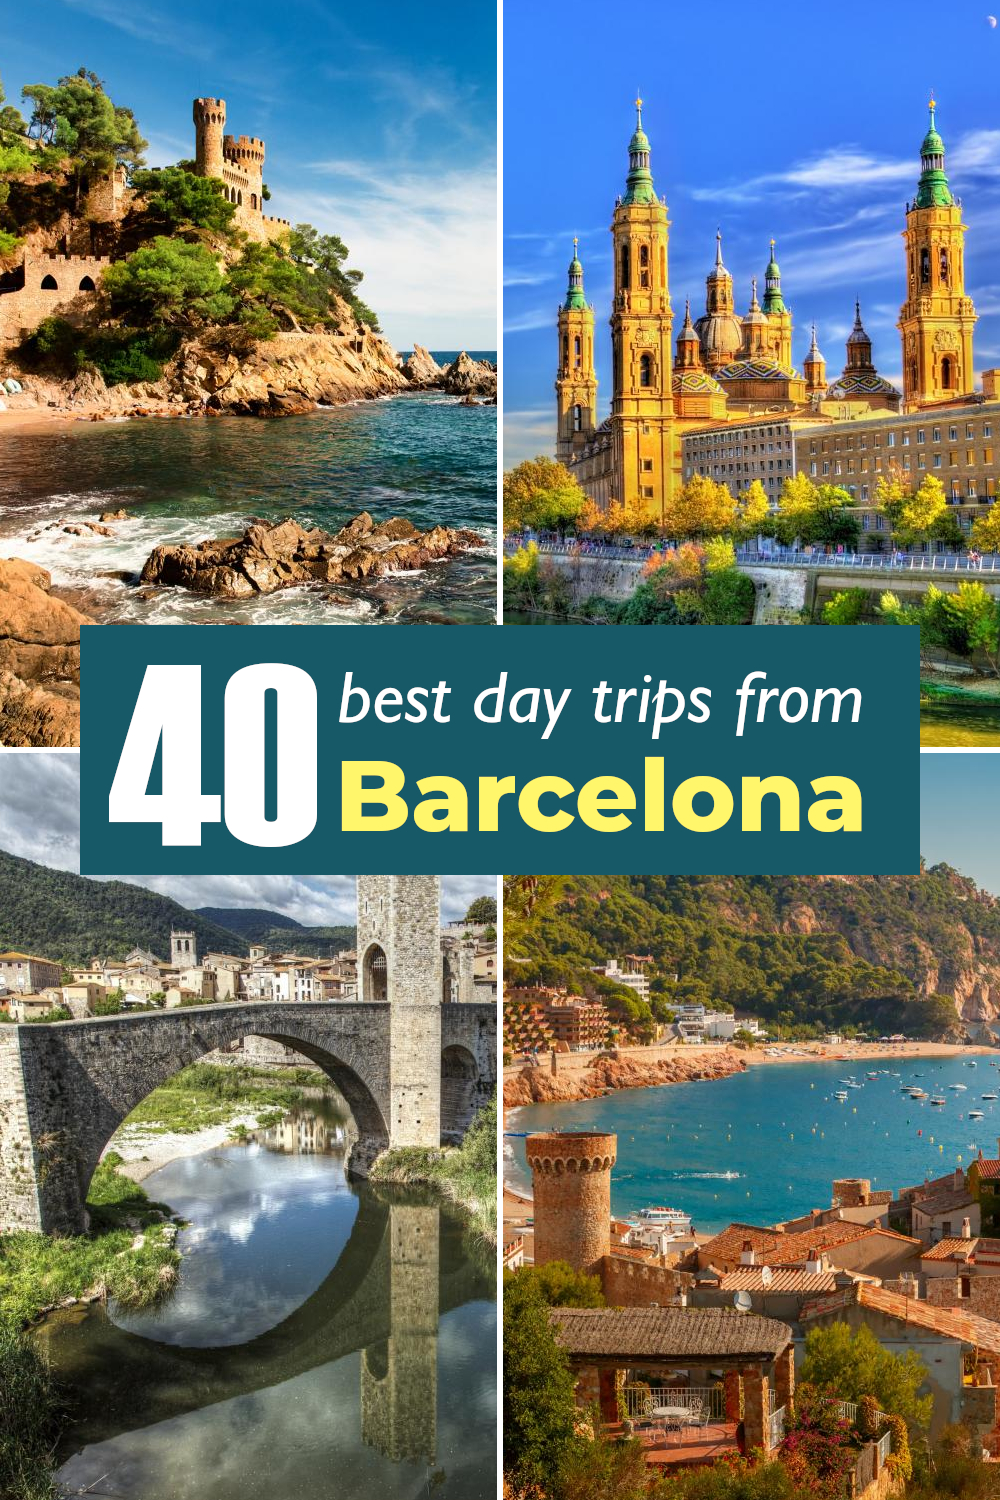 40 best day trips from Barcelona from short drives to mountain villages and Catalan beaches to national parks and amazing Spanish towns